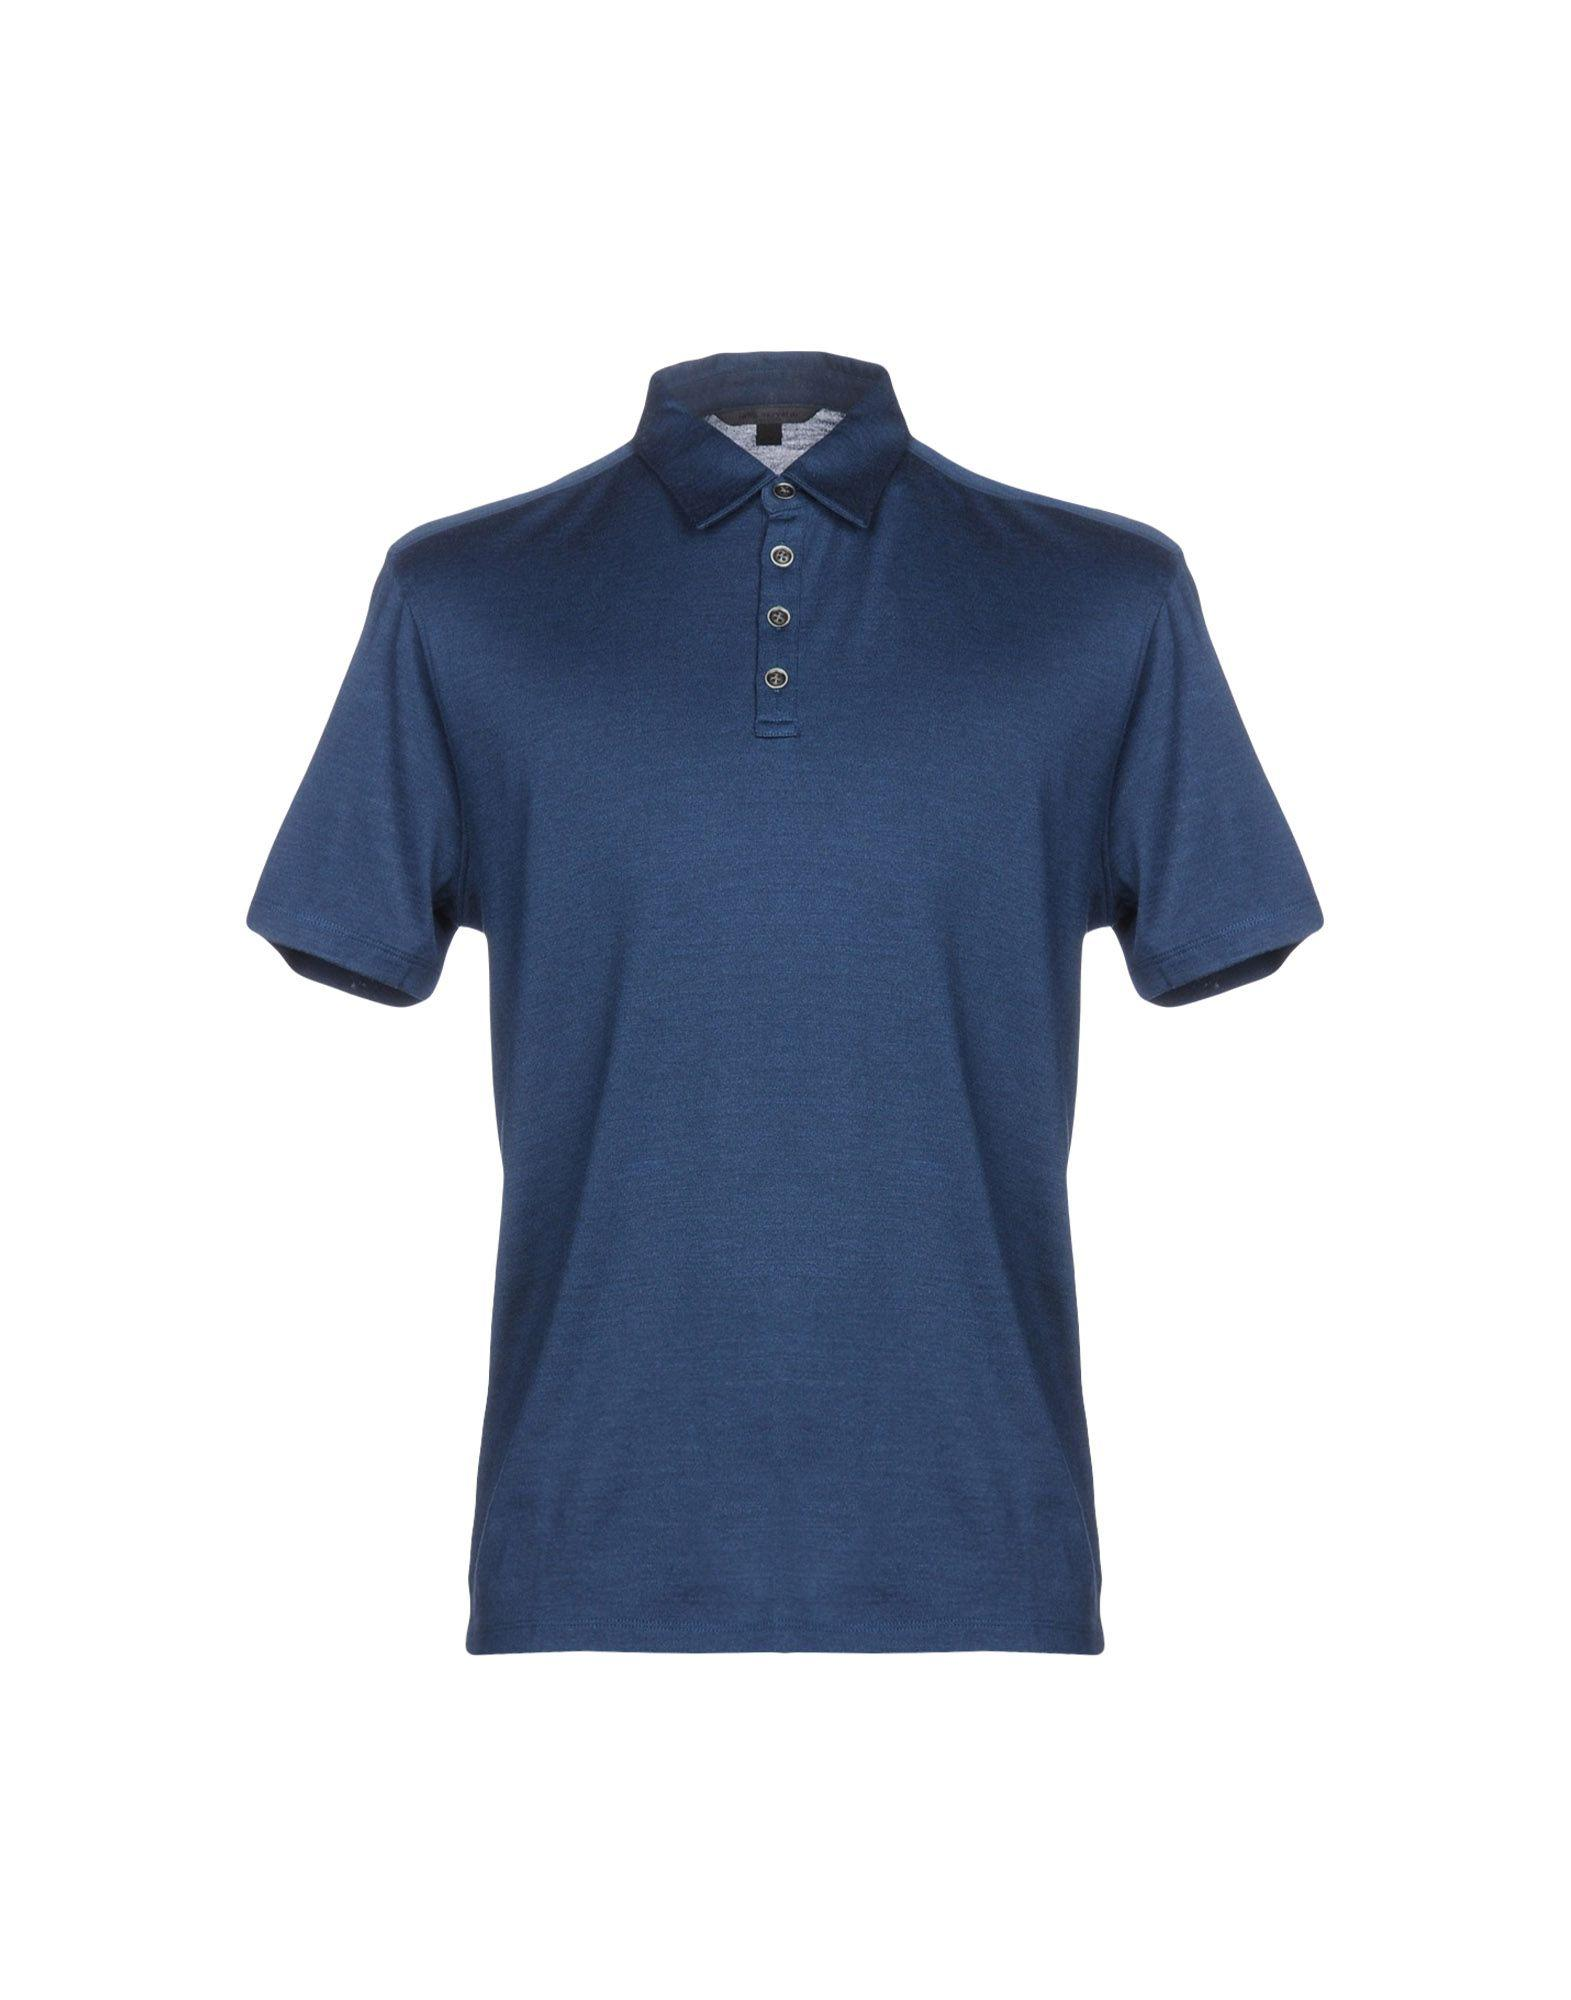 John Varvatos Polo Shirts In Slate Blue